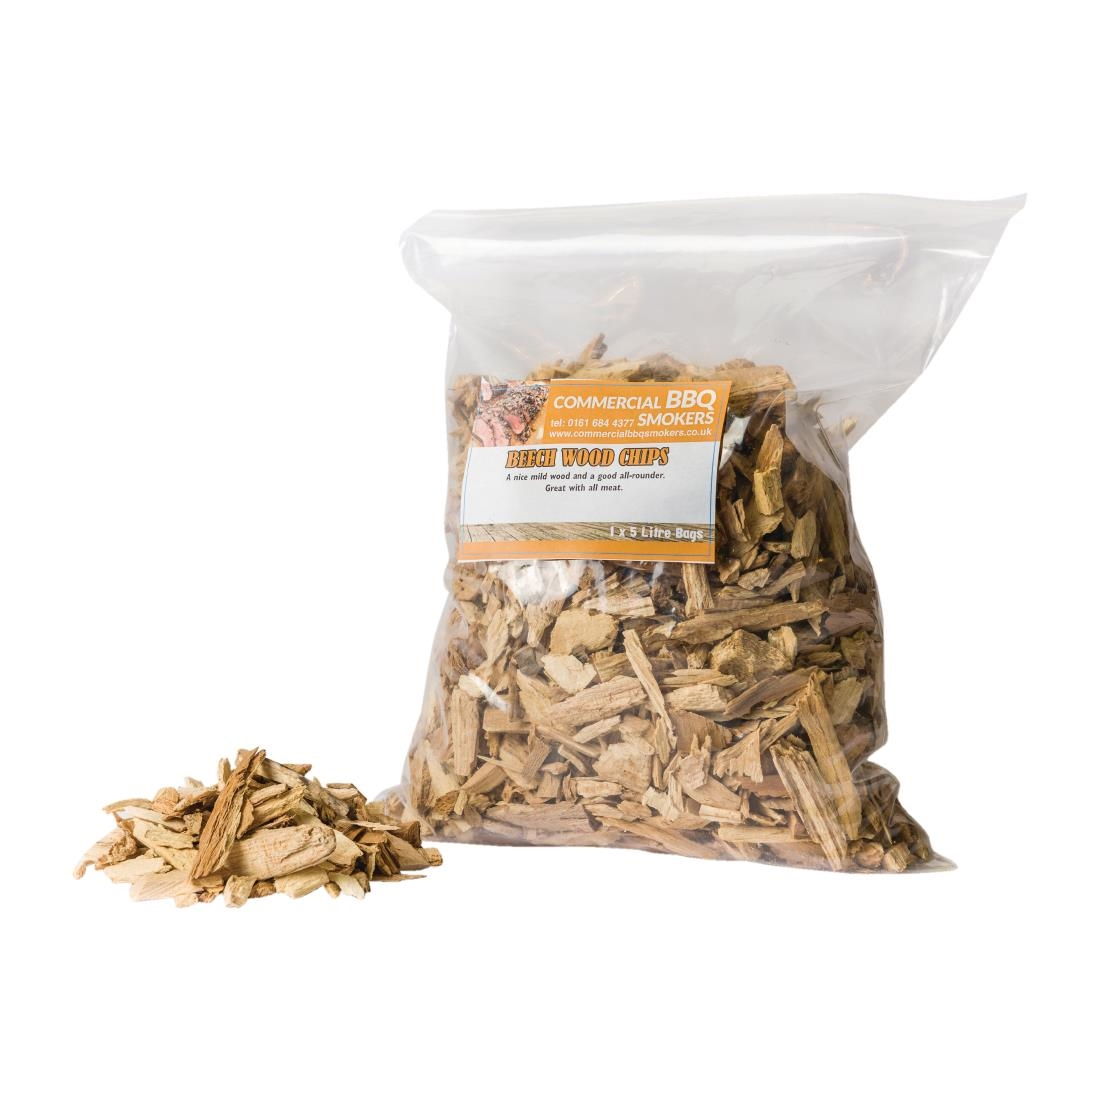 Blackwood Smoking Chips Beech 5 Litre Bags (Pack of 4) Pack of 4